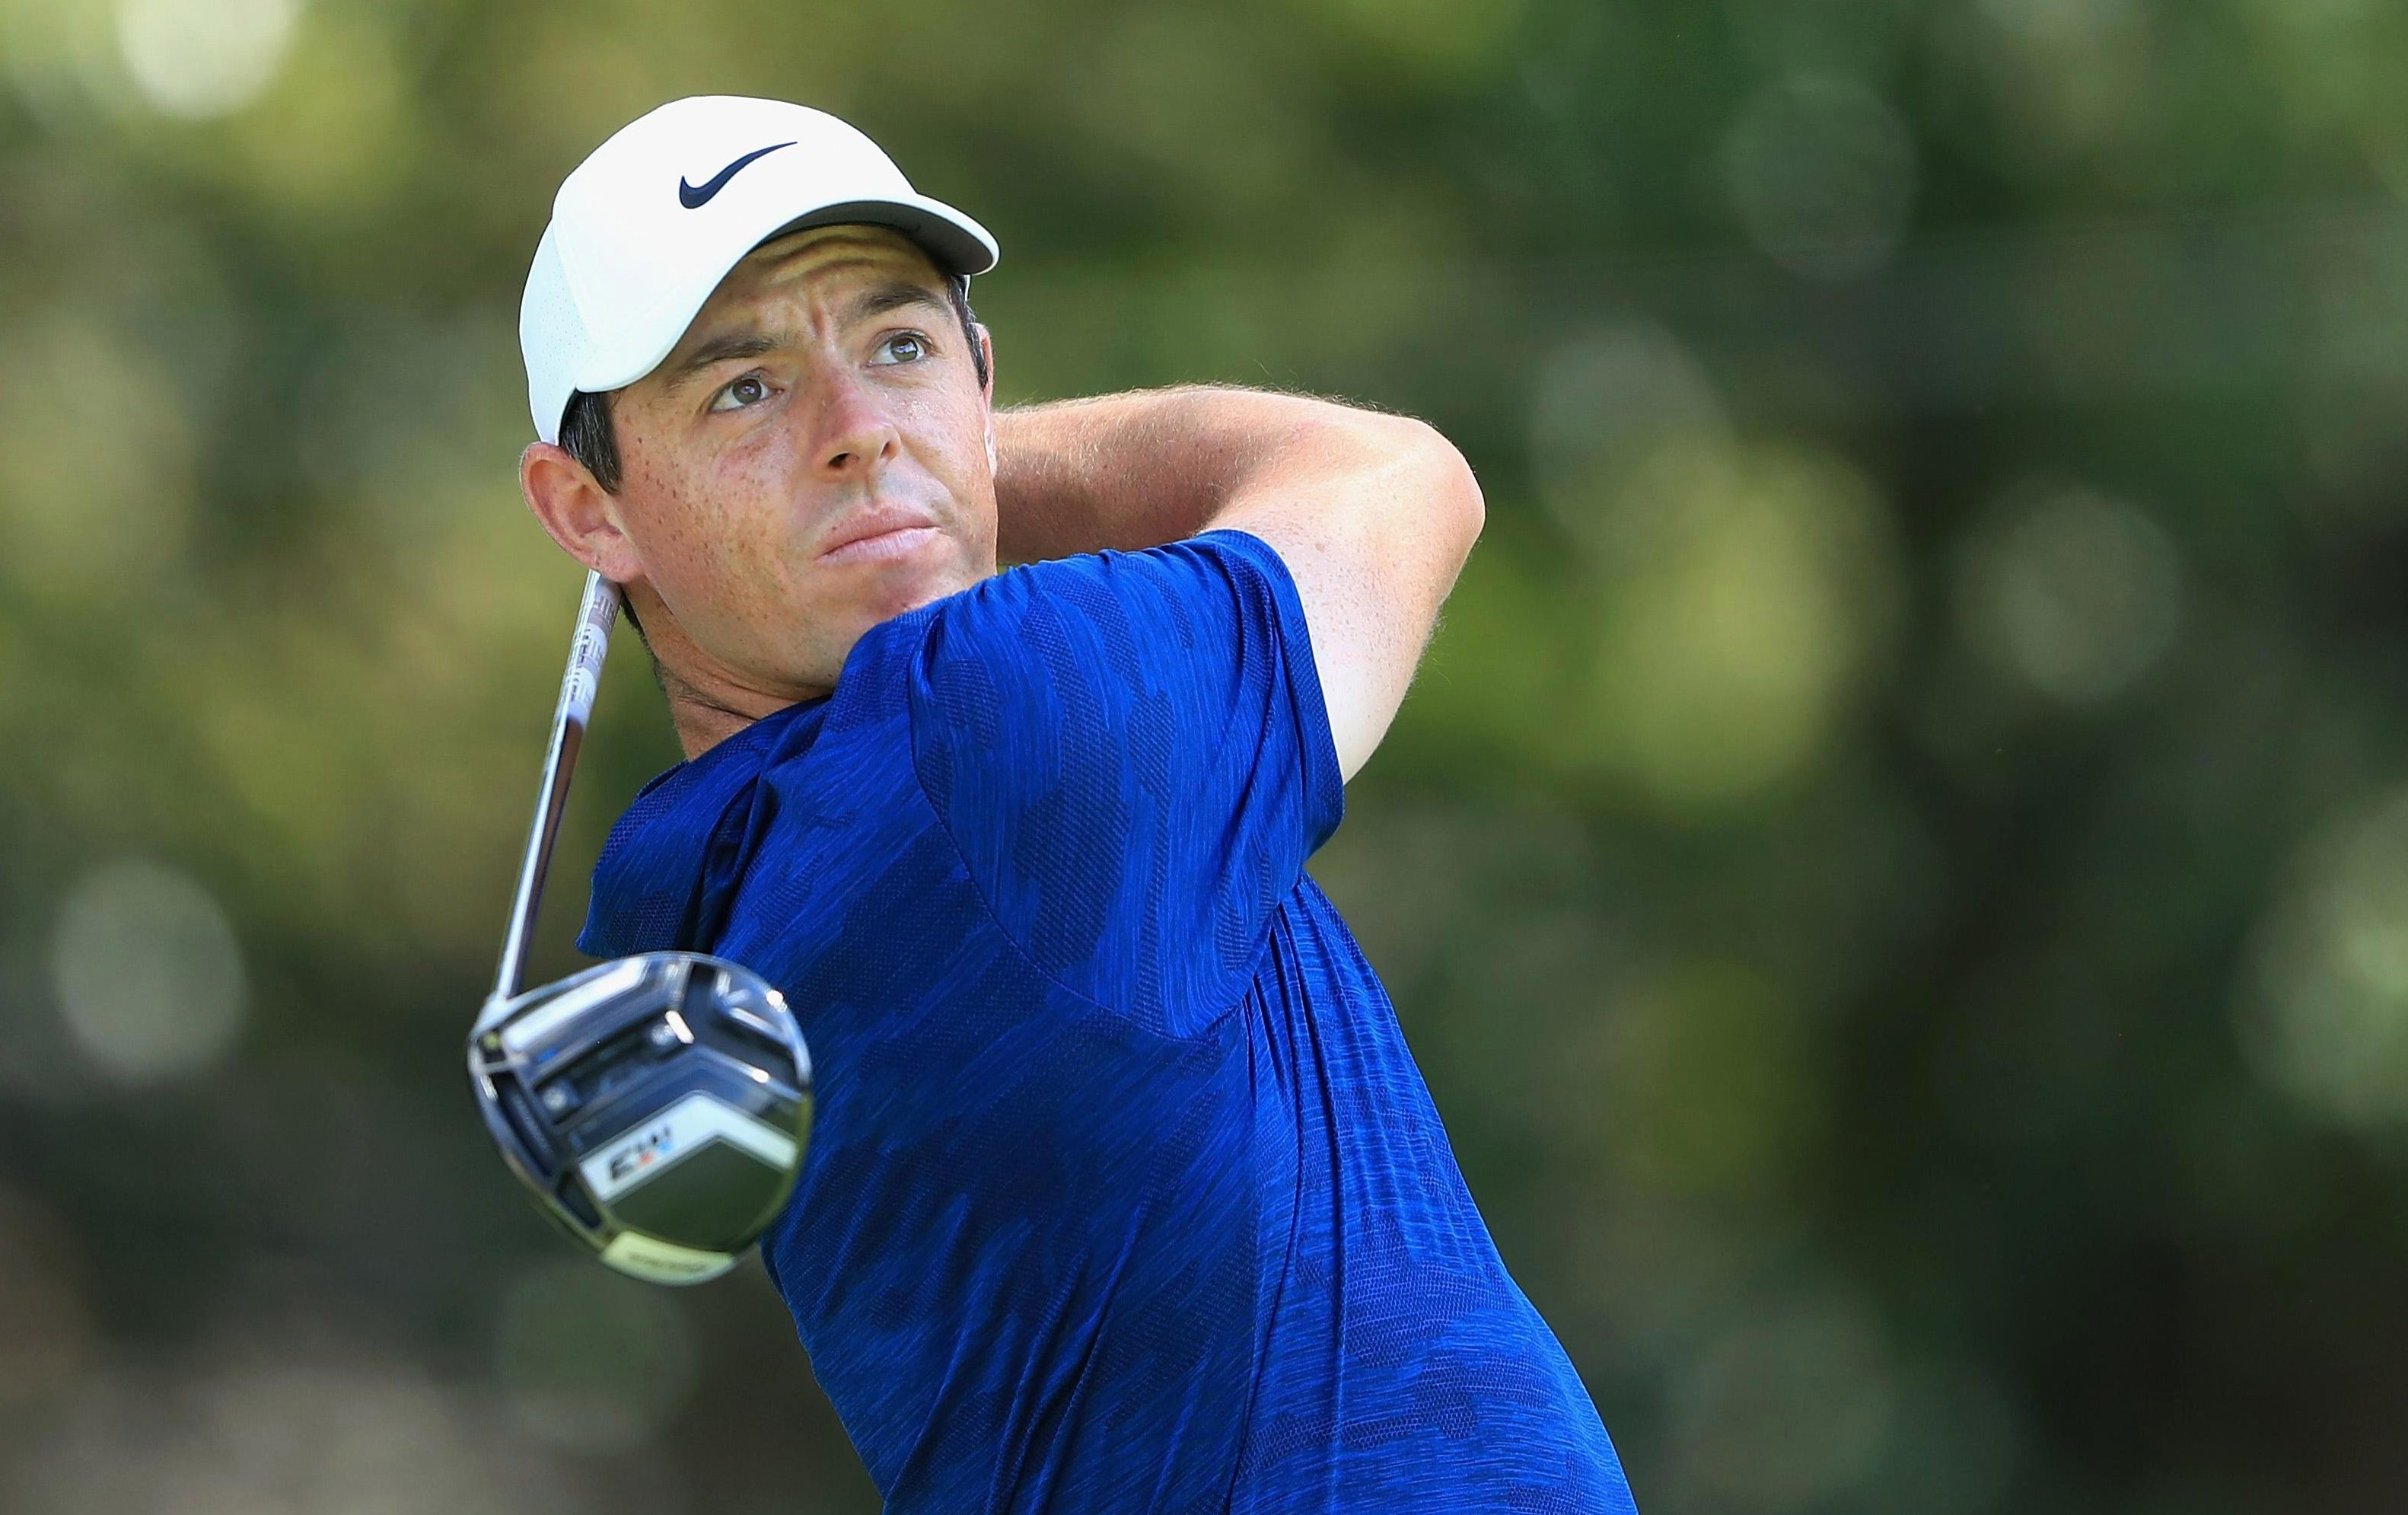 Rory McIlroy is breathing down their necks though